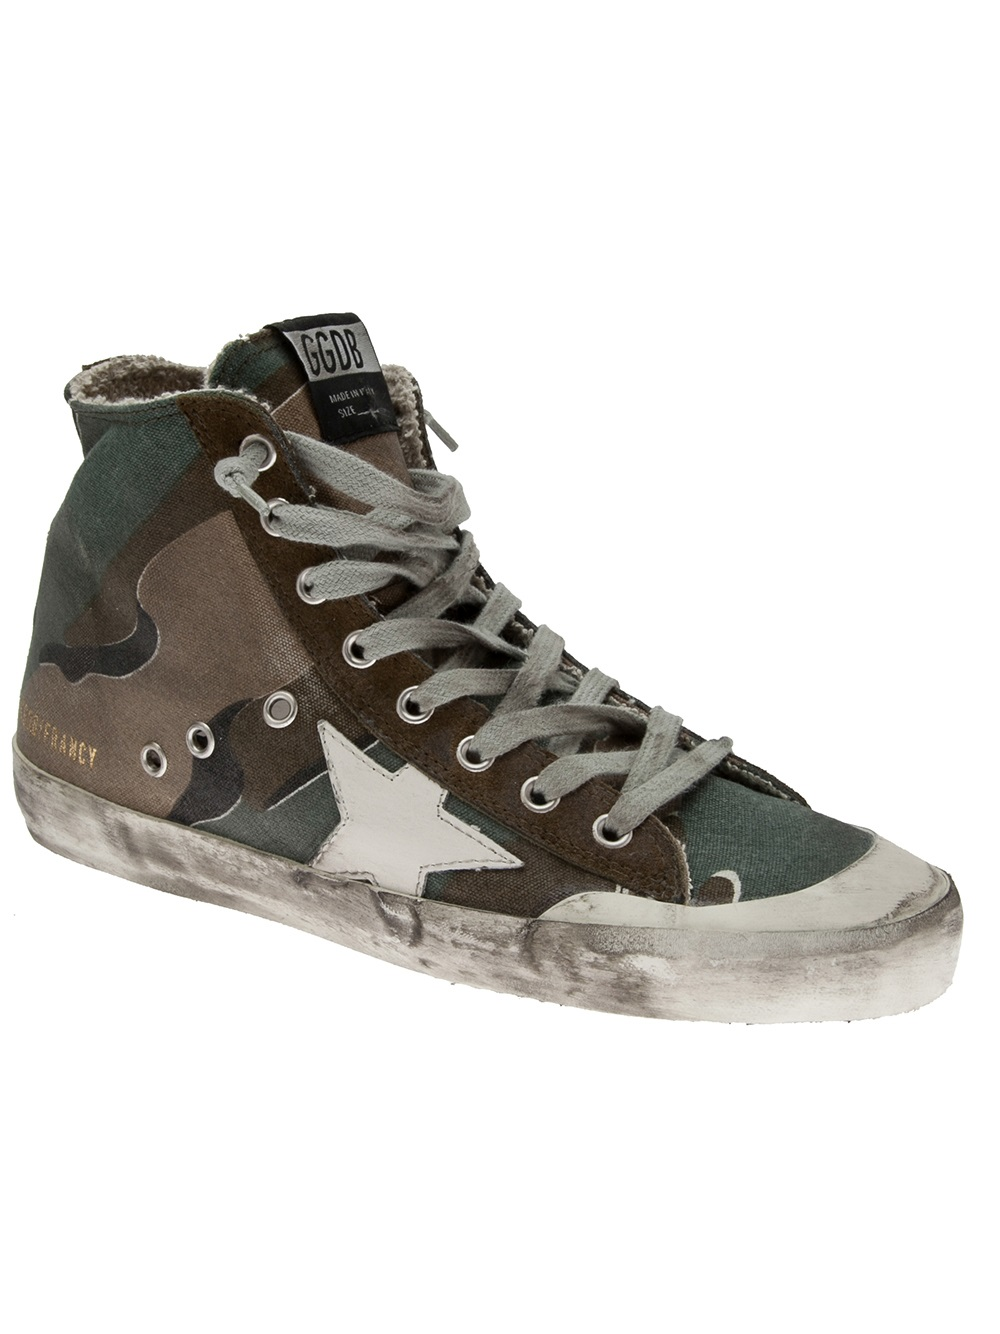 Golden goose deluxe brand Francy Sneaker in Brown